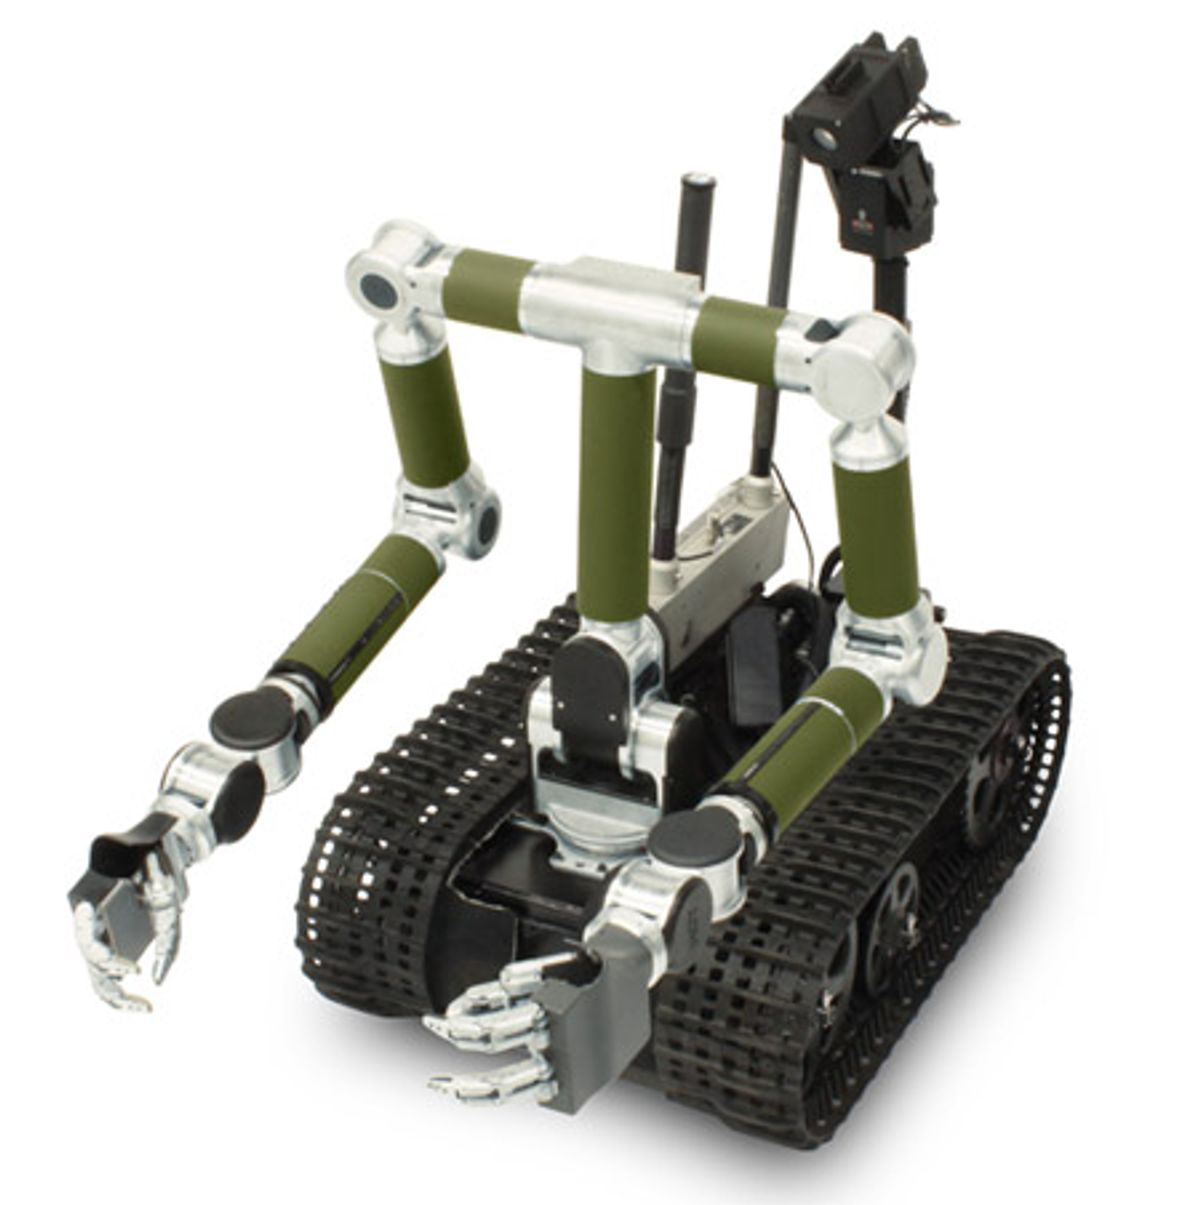 HDT's MK2 Manipulators Can Outfit PackBots with Arms and Hands